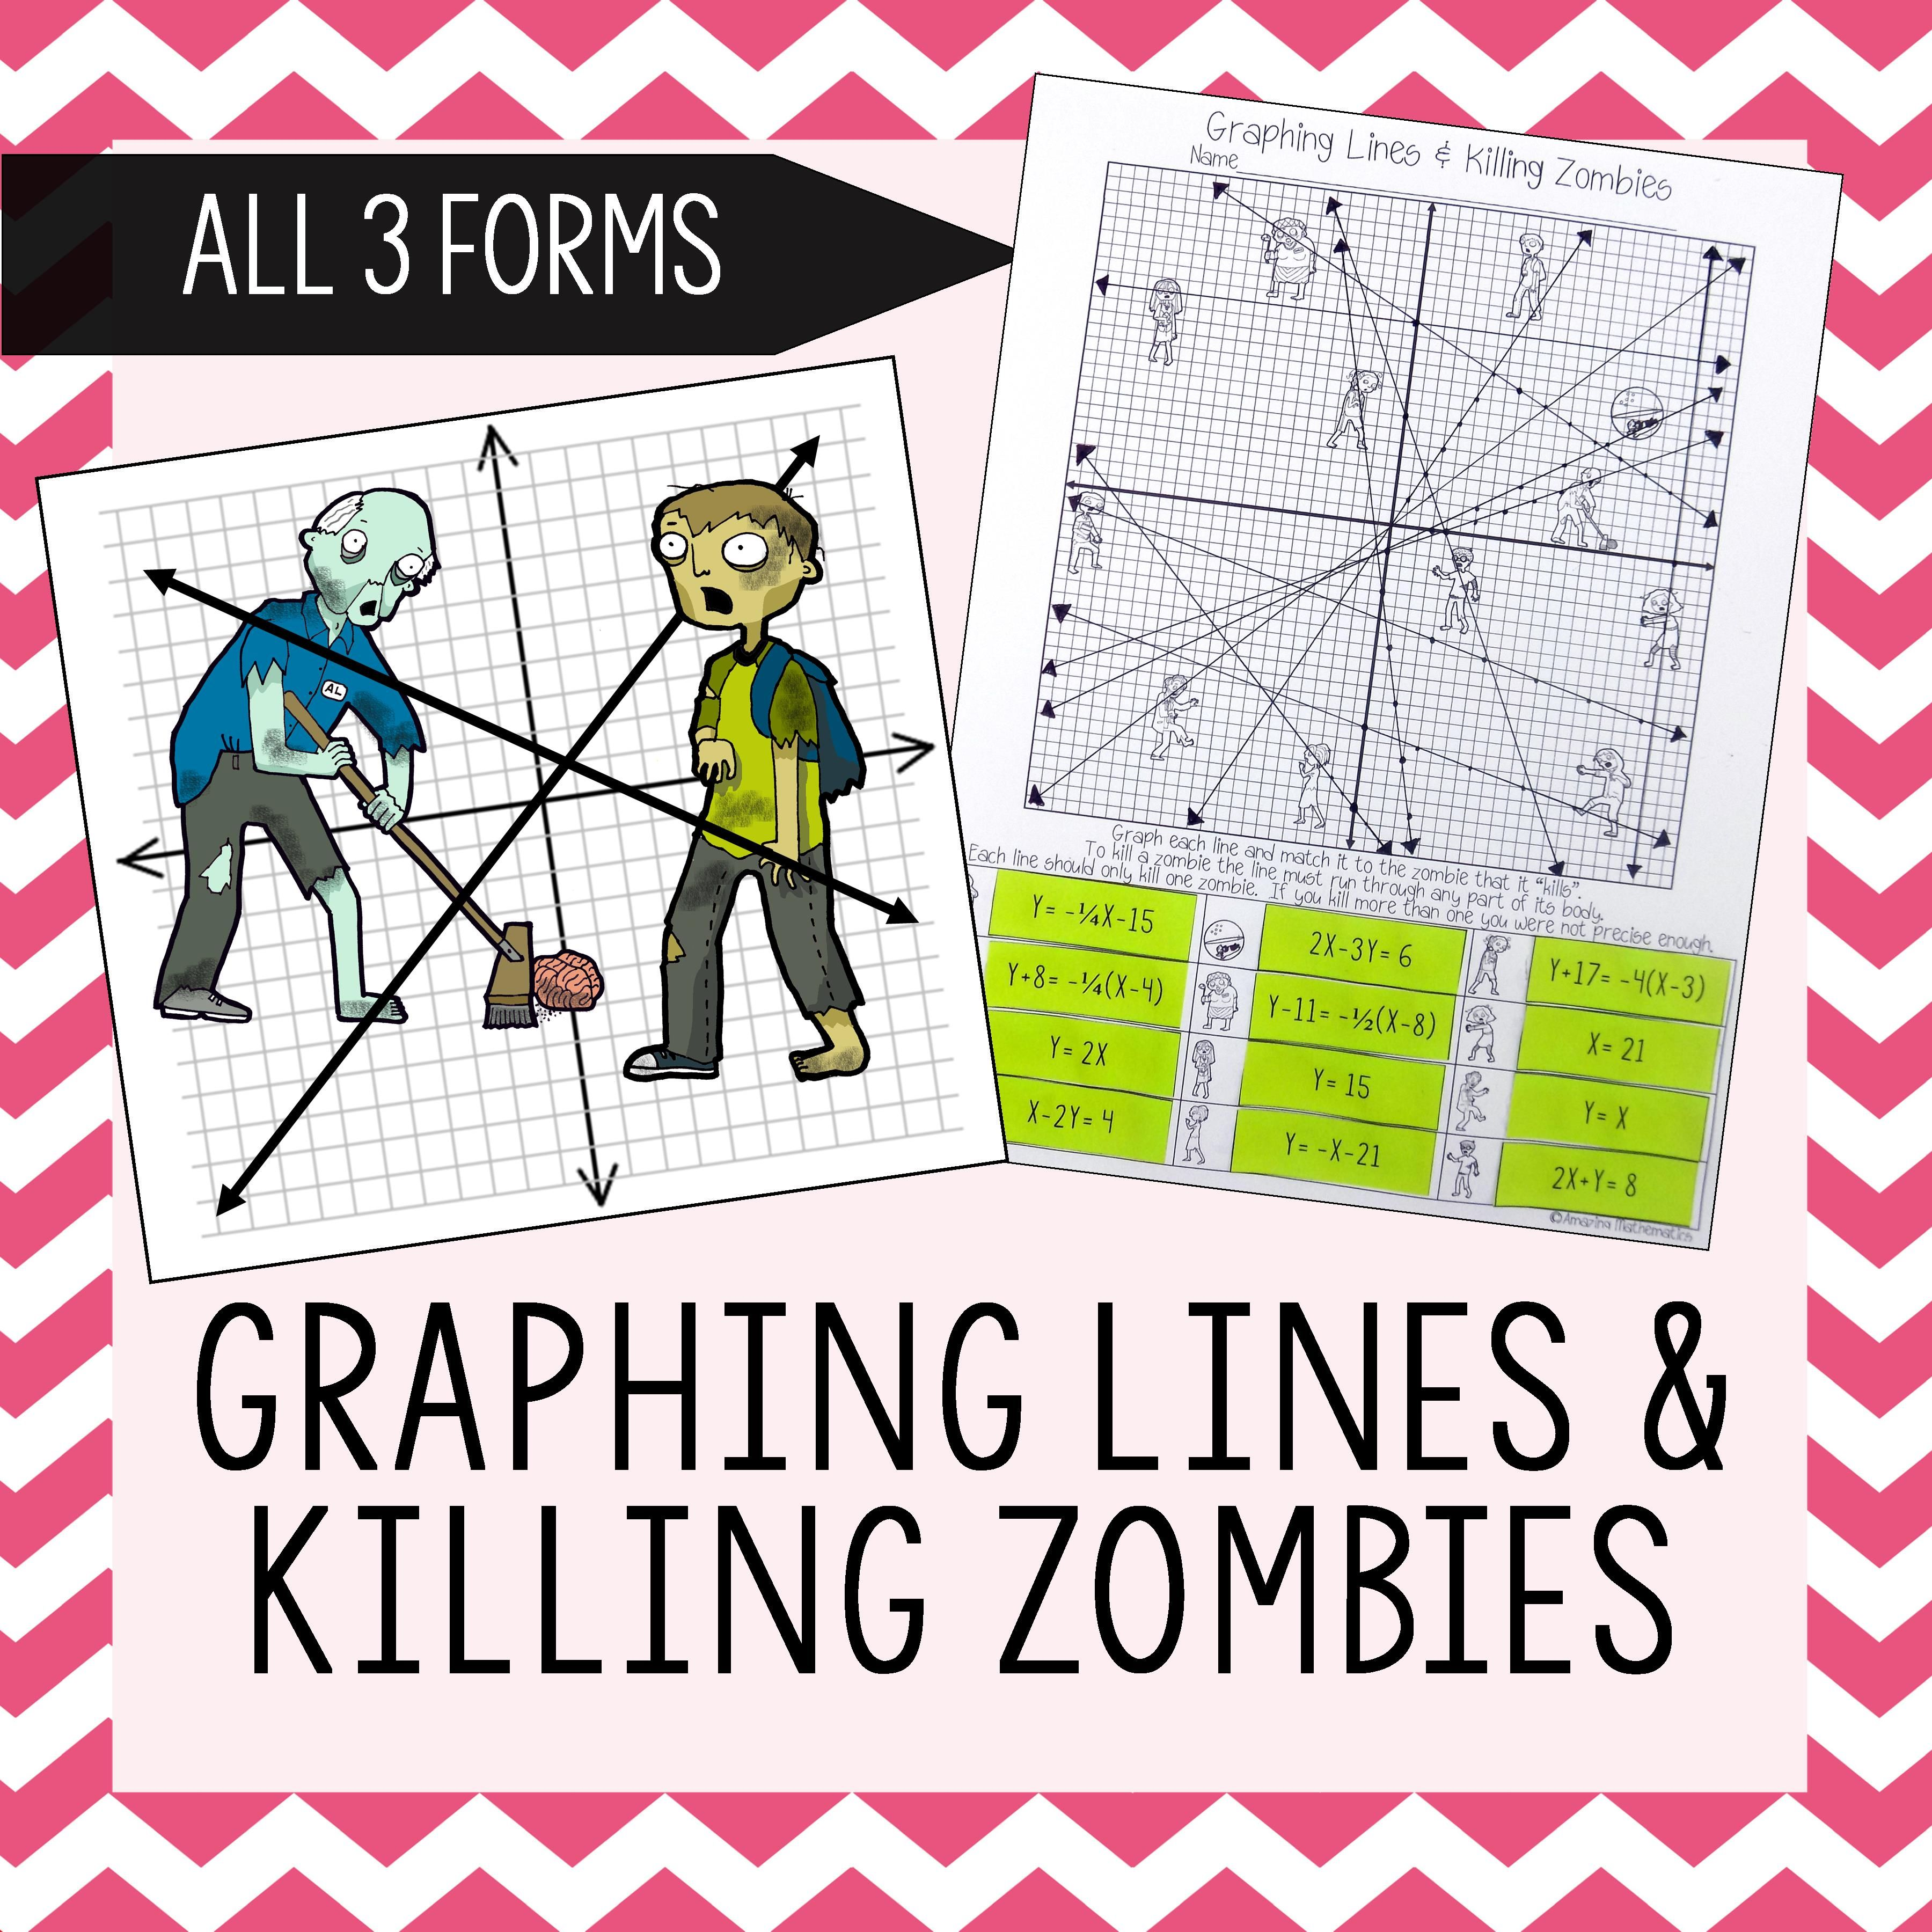 Graphing Lines Zombies Graphing In All 3 Forms Of Linear Equations Activity Graphing Activities Linear Equations Activity Graphing Linear Equations [ 3600 x 3600 Pixel ]